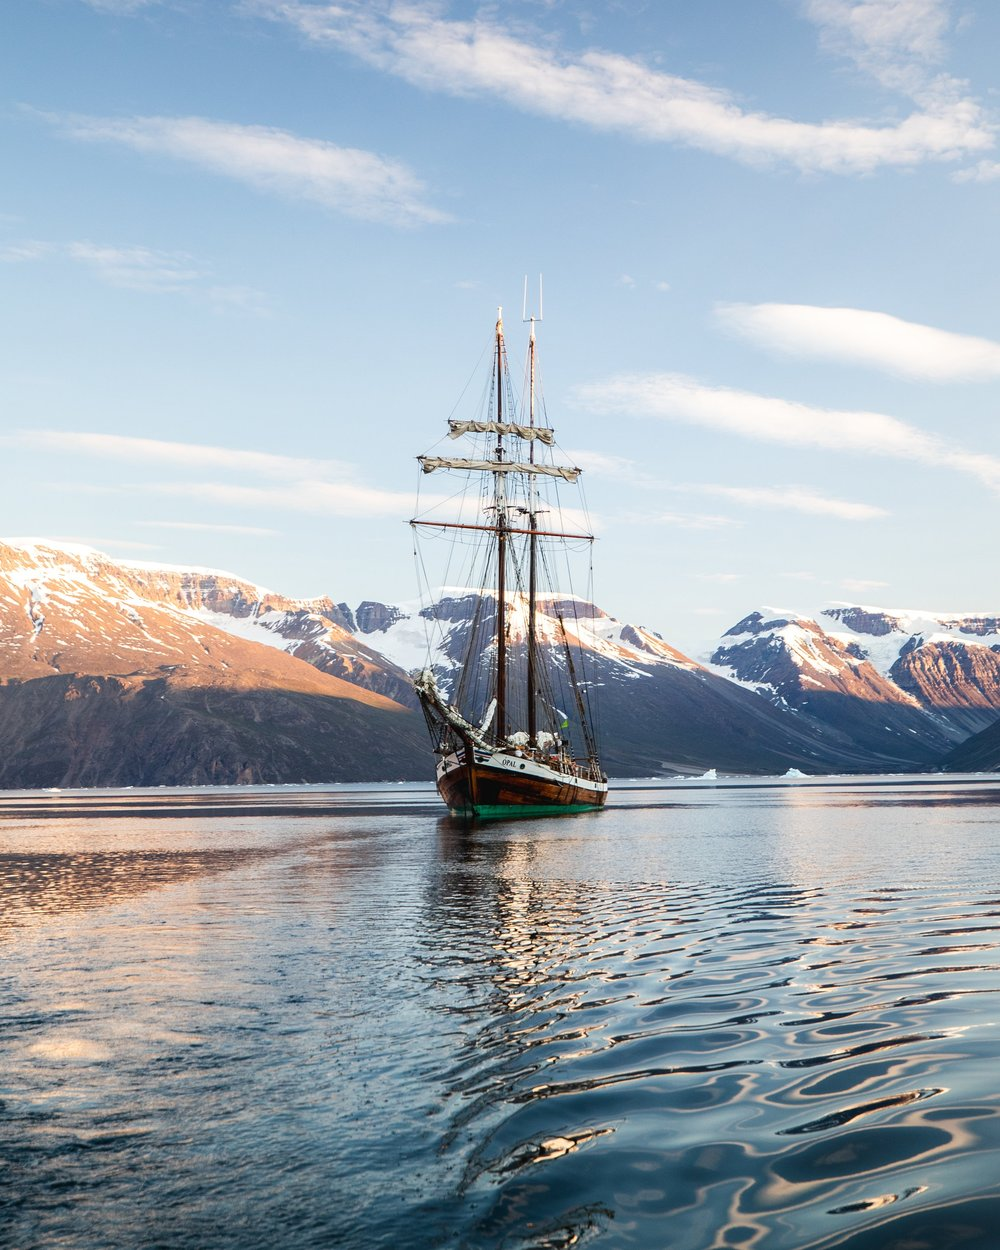 Western Winds Photographic Expedition Iceland